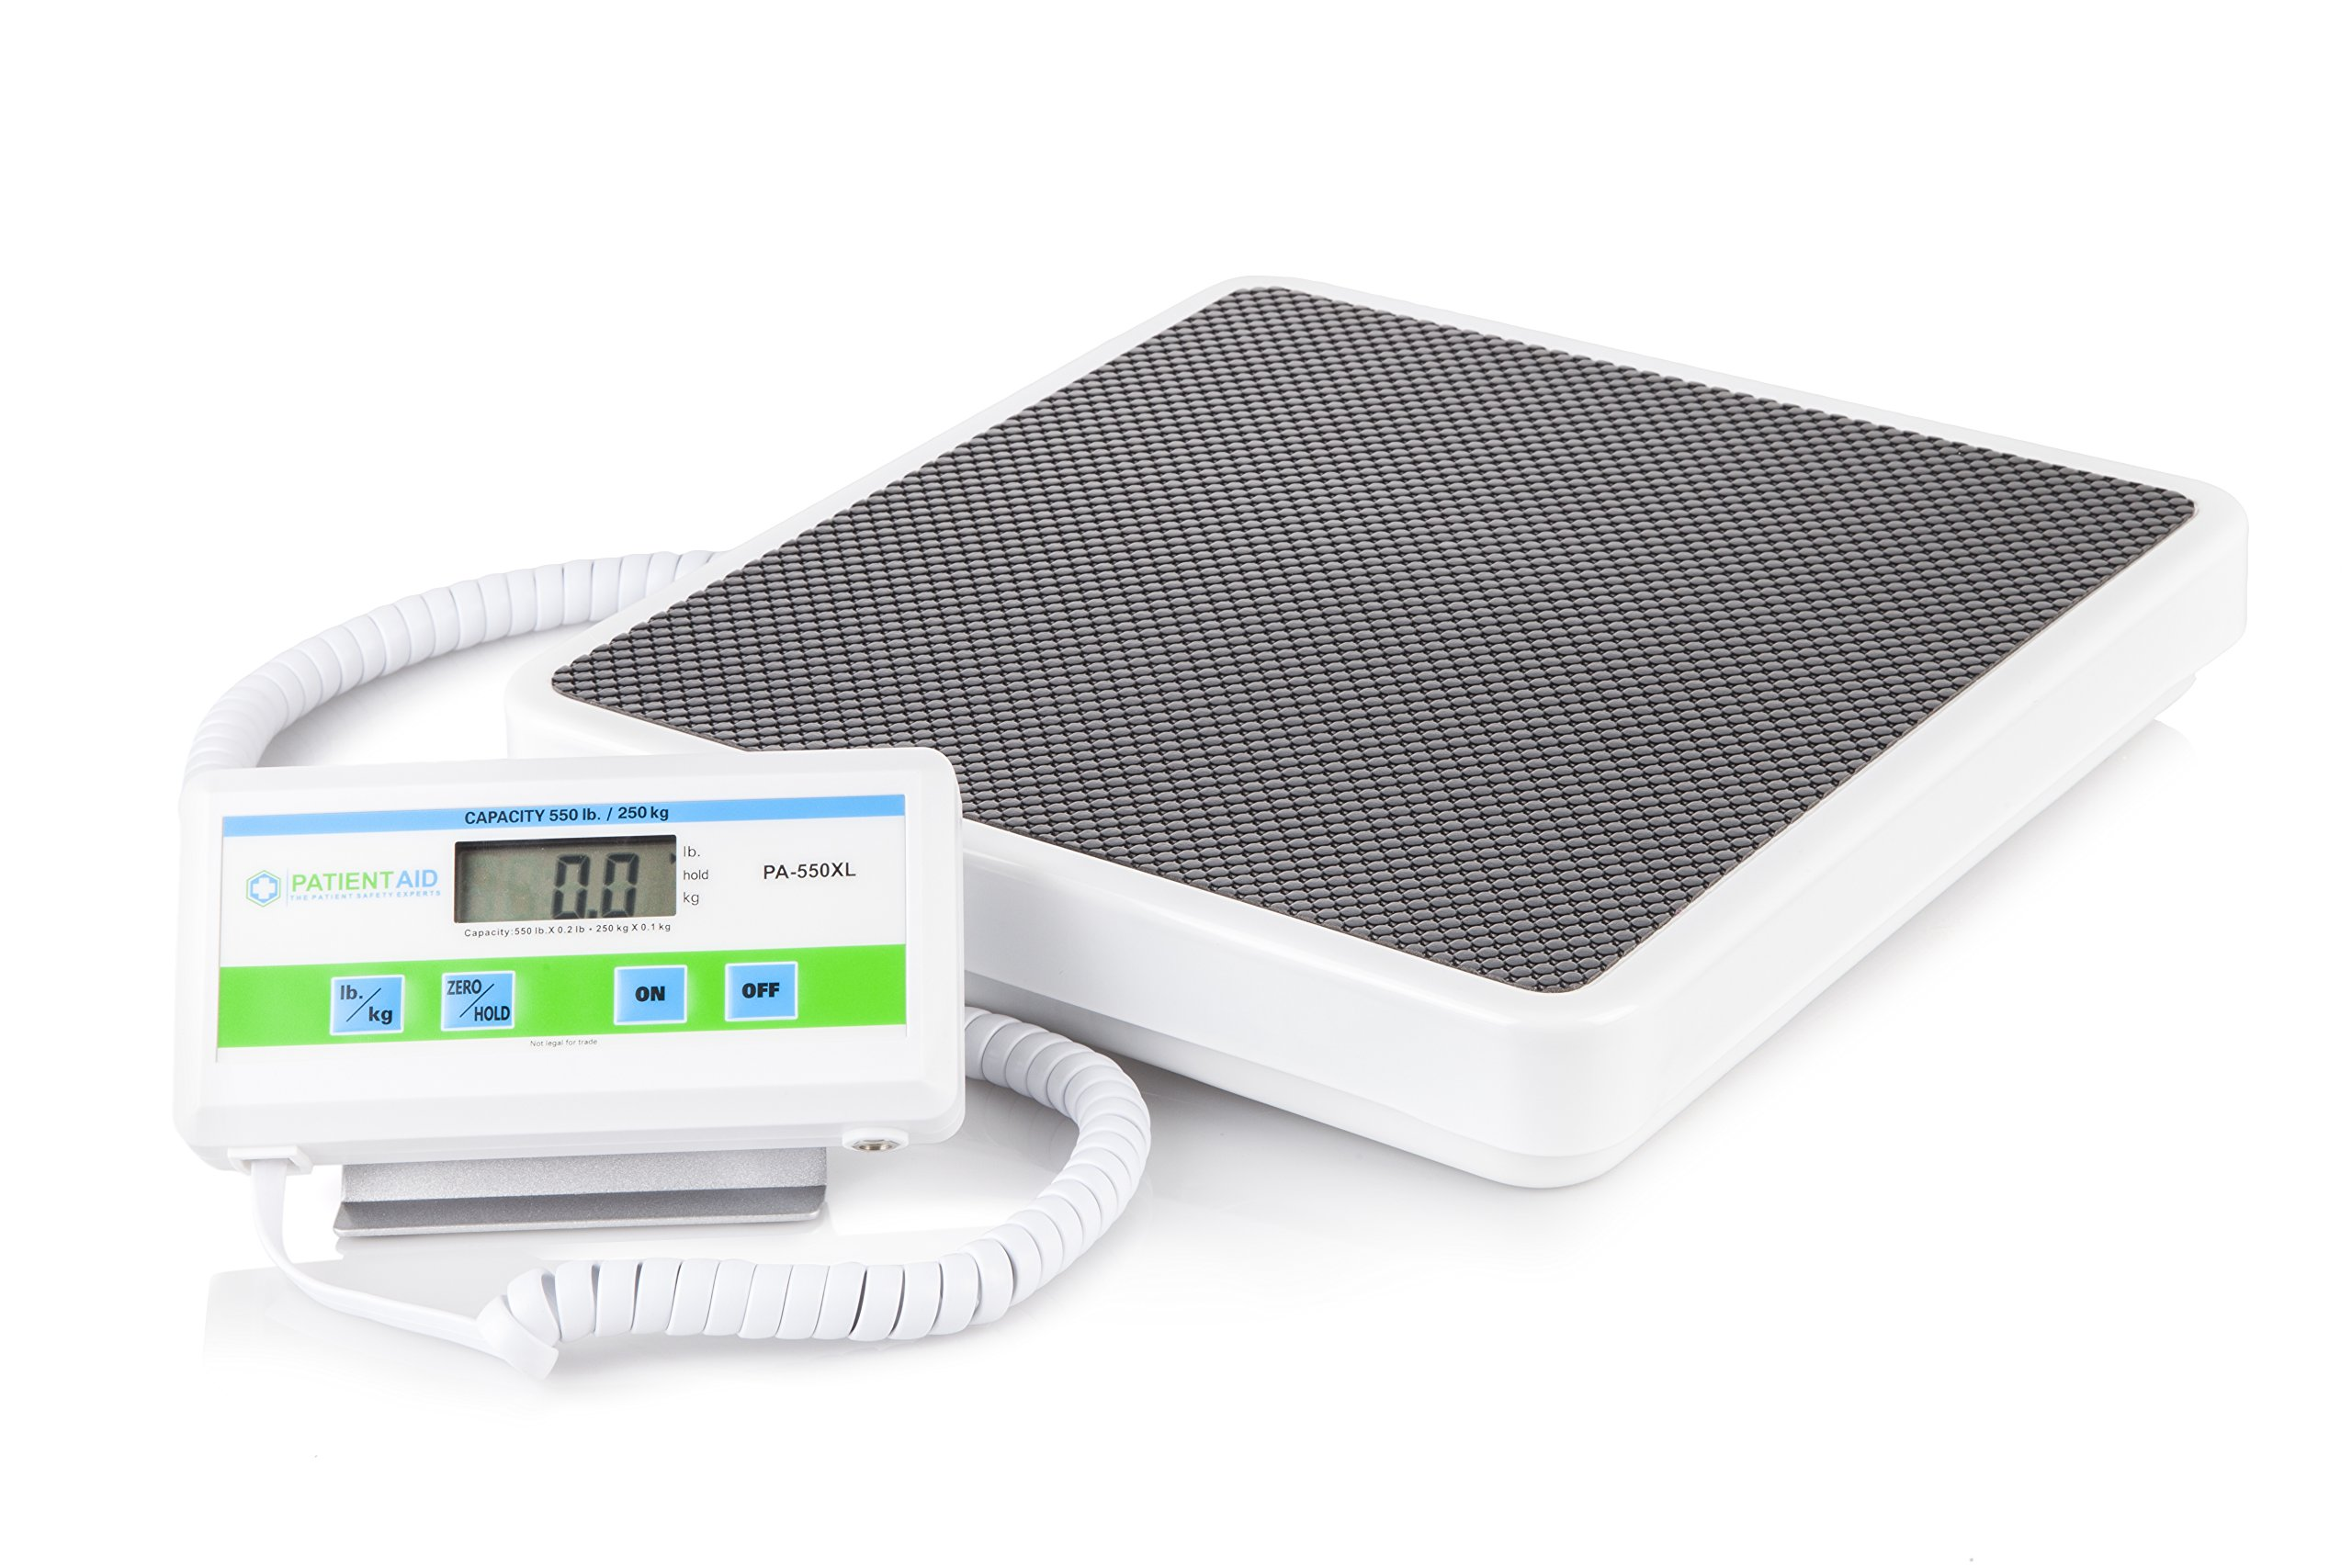 Medical Heavy Weight Floor Scale: Digital Easy Read and High Capacity Health, Fitness and Physician Portable Scale with Battery andAC Adapter - Pound and Kilogram Settings - 550 lb / 249 Kg Limit